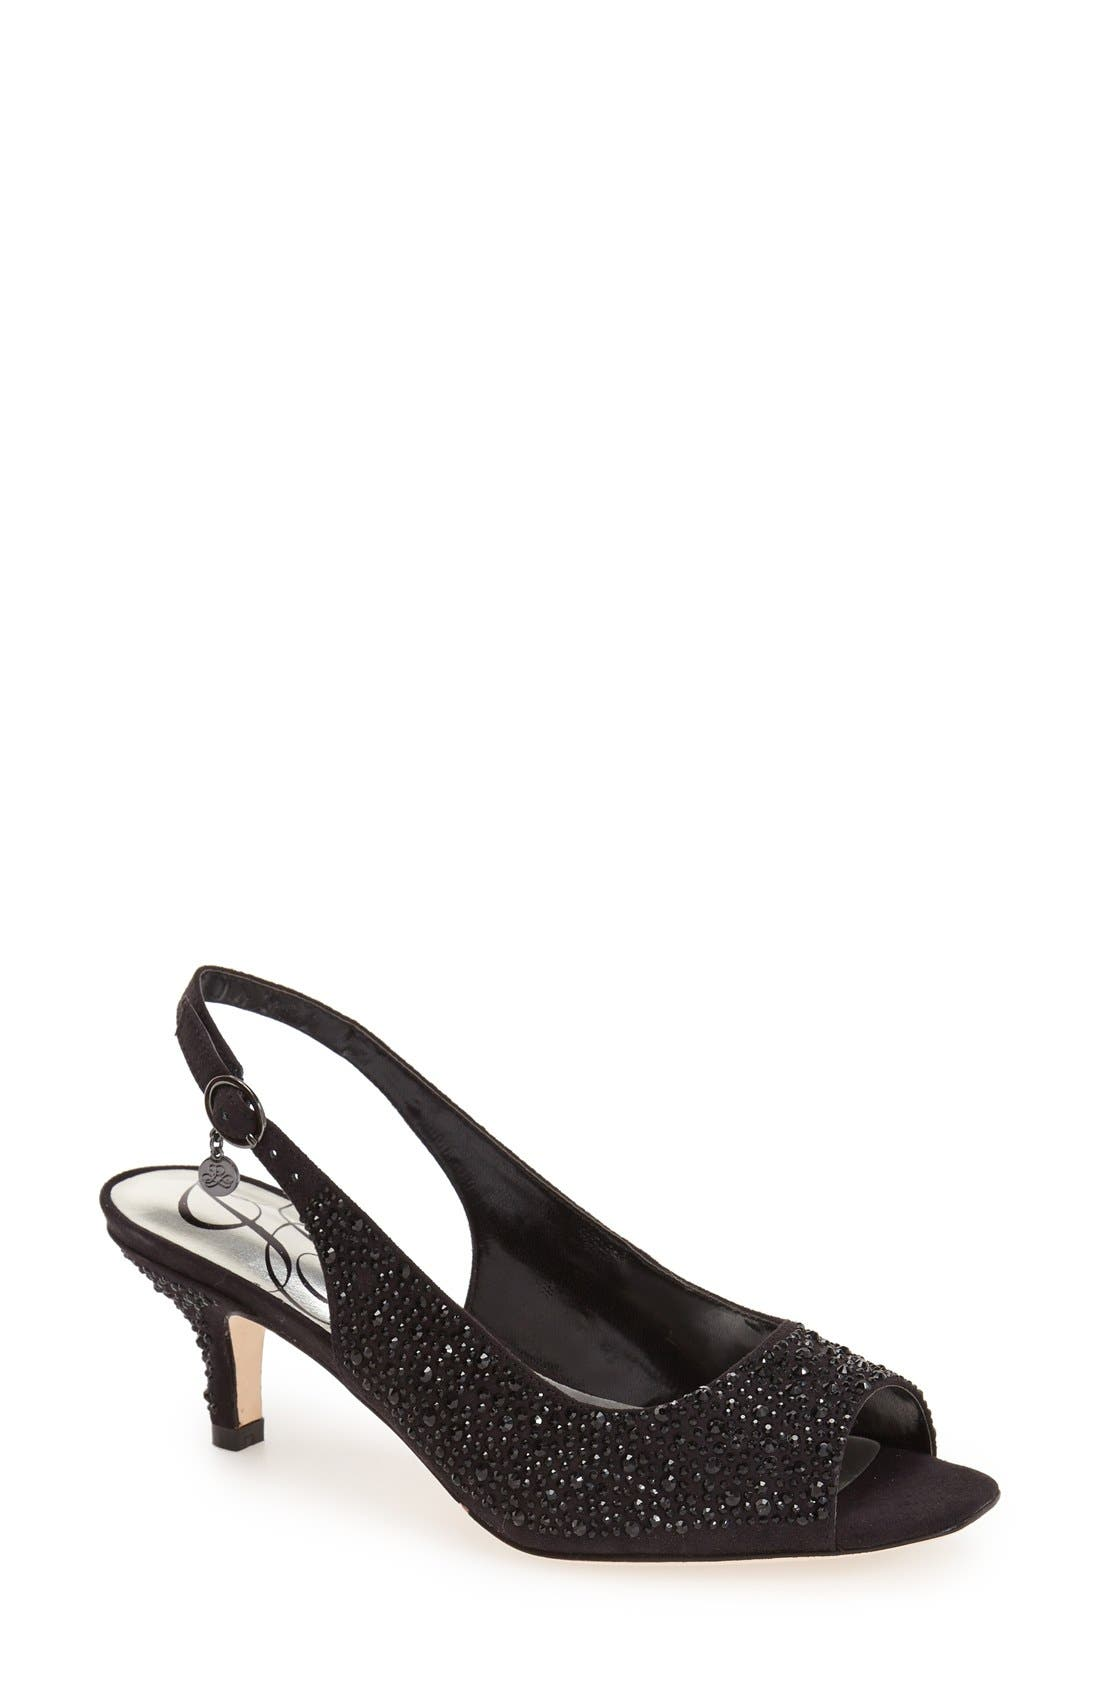 J. Reneé 'Impuls' Crystal Embellished Slingback Pump (Women)